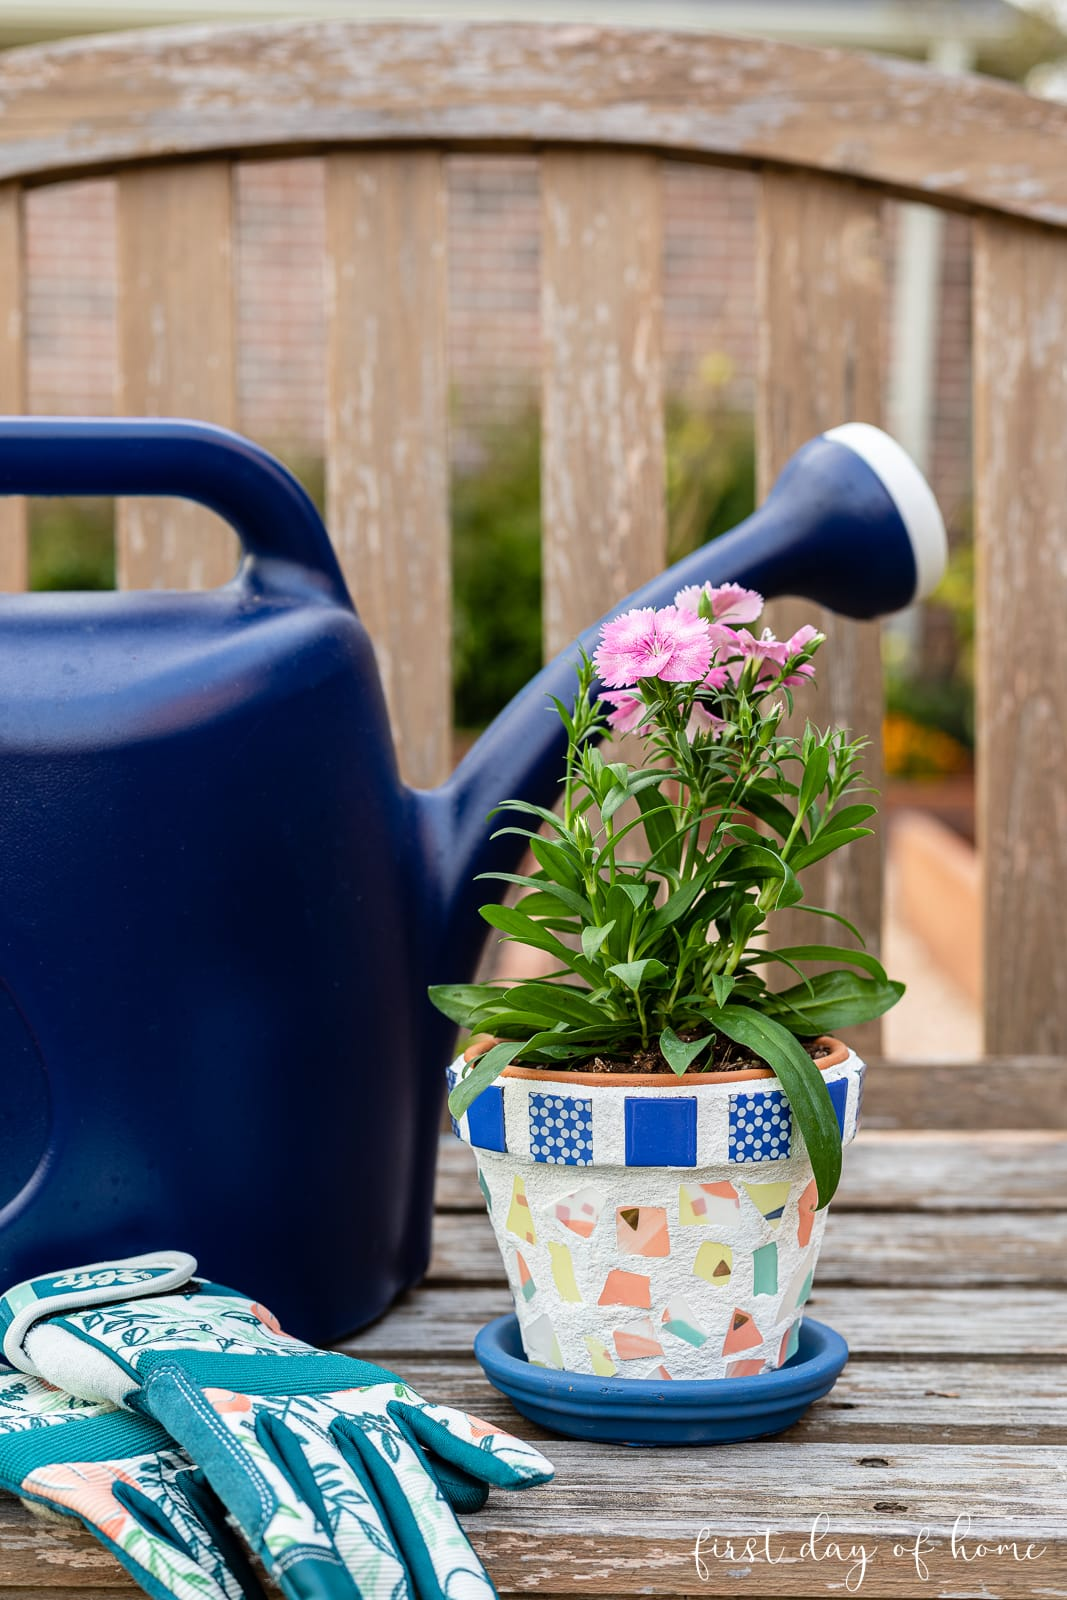 Mosaic flower pot with watering can and gardening gloves on wooden bench